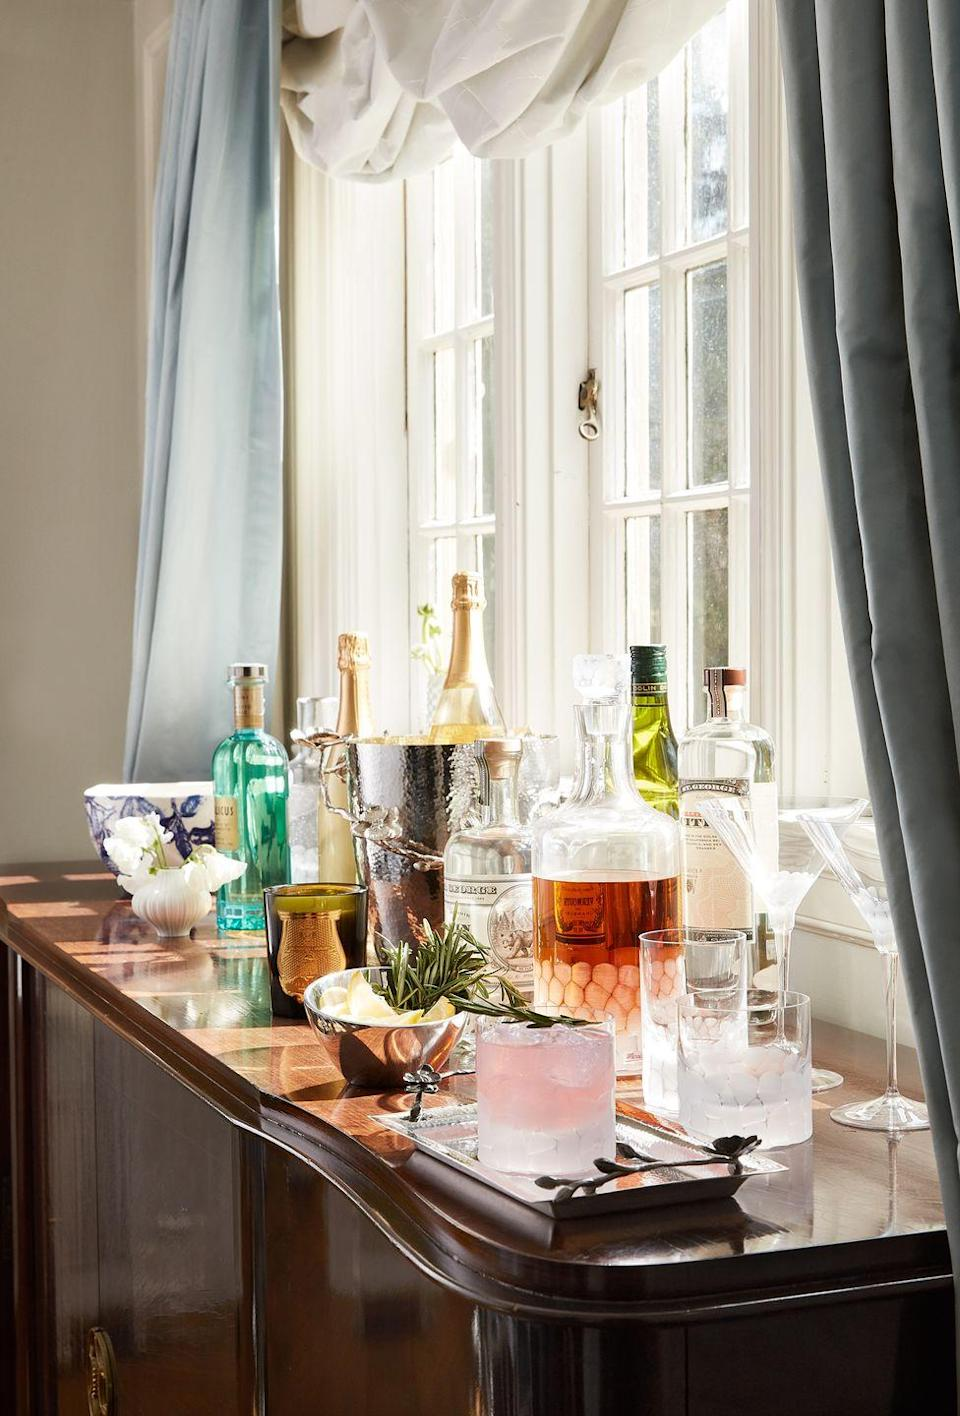 """<p>Even if your bar is not one that can easily move about, it's imperative to keep it styled in interesting ways to keep the space feeling novel, especially when entertaining. New York City interior designer <a href=""""http://www.younghuh.com"""" rel=""""nofollow noopener"""" target=""""_blank"""" data-ylk=""""slk:Young Huh"""" class=""""link rapid-noclick-resp"""">Young Huh</a> knows the power of this.</p><p>""""I say: Always style a bar with herbs. Some thyme or rosemary in a cocktail is a little surprising, smells so wonderful, and looks fantastic on a bar.""""</p><p> Dramatic drapery, fresh herbs from the garden, and a bud vase of blooms turn this bar a beautiful moment.</p>"""